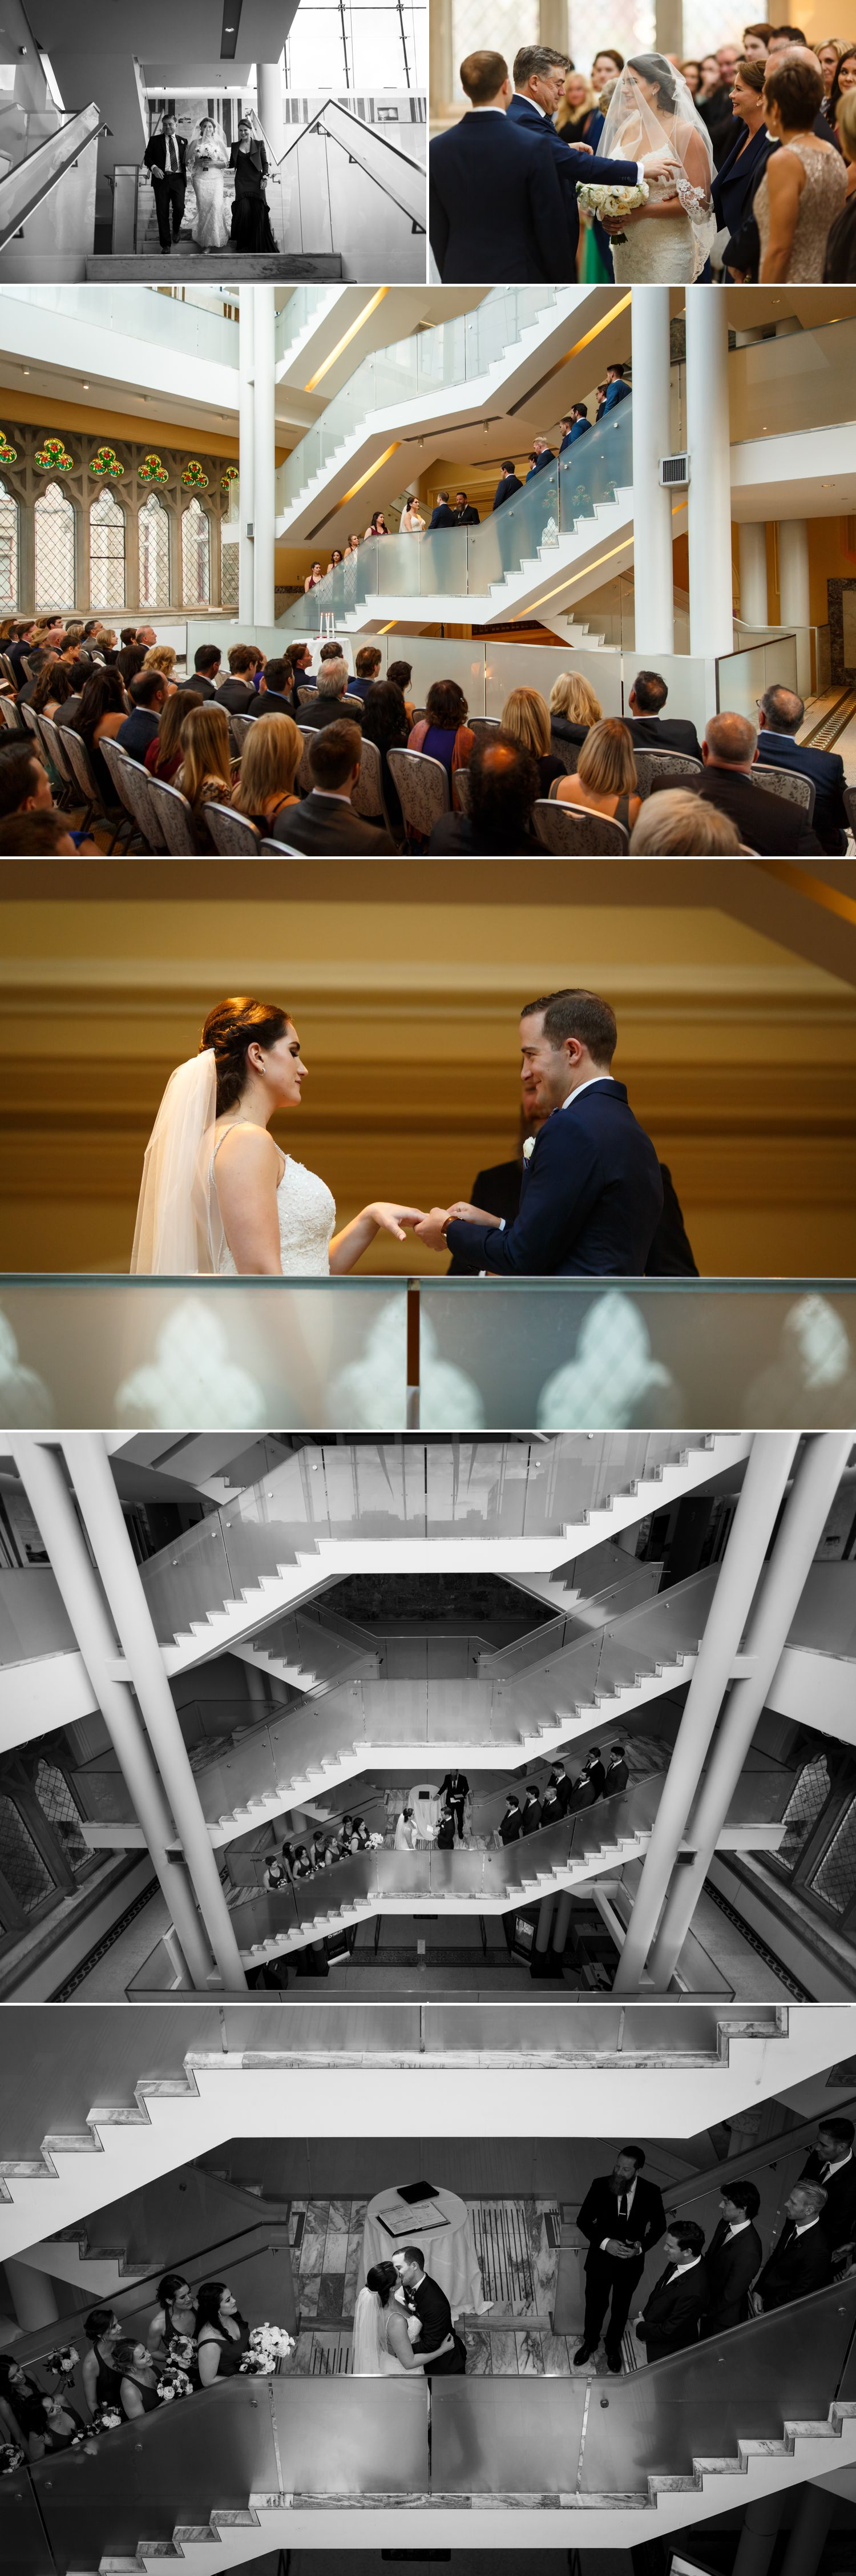 A wedding ceremony taking place inside The Museum of Nature in downtown Ottawa